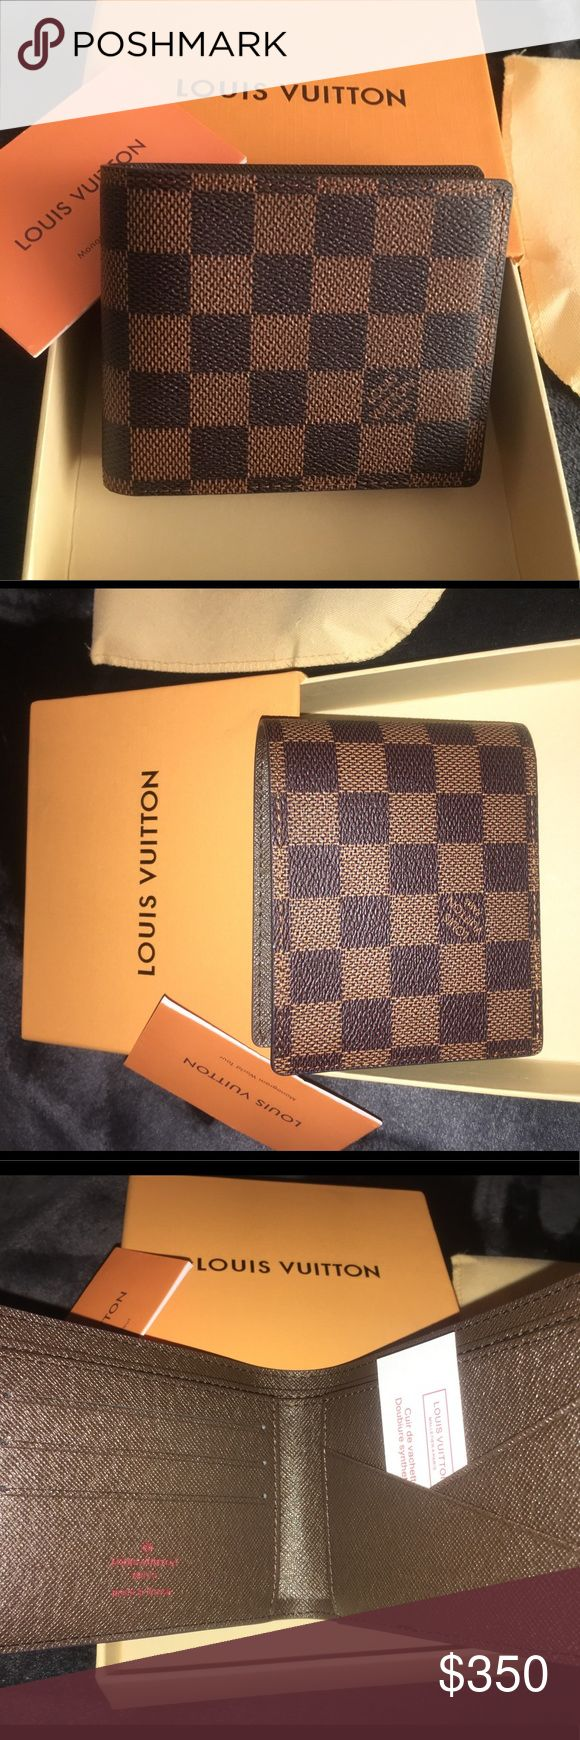 BB-Authentic Louis Vuitton Damier Graphite NWT Brand New with tags Authentic Louis Vuitton Mens Wallet. Beautiful piece on its original box. Instead of paying $490 + Tax at the store you can own it for just $350 Louis Vuitton Bags Wallets